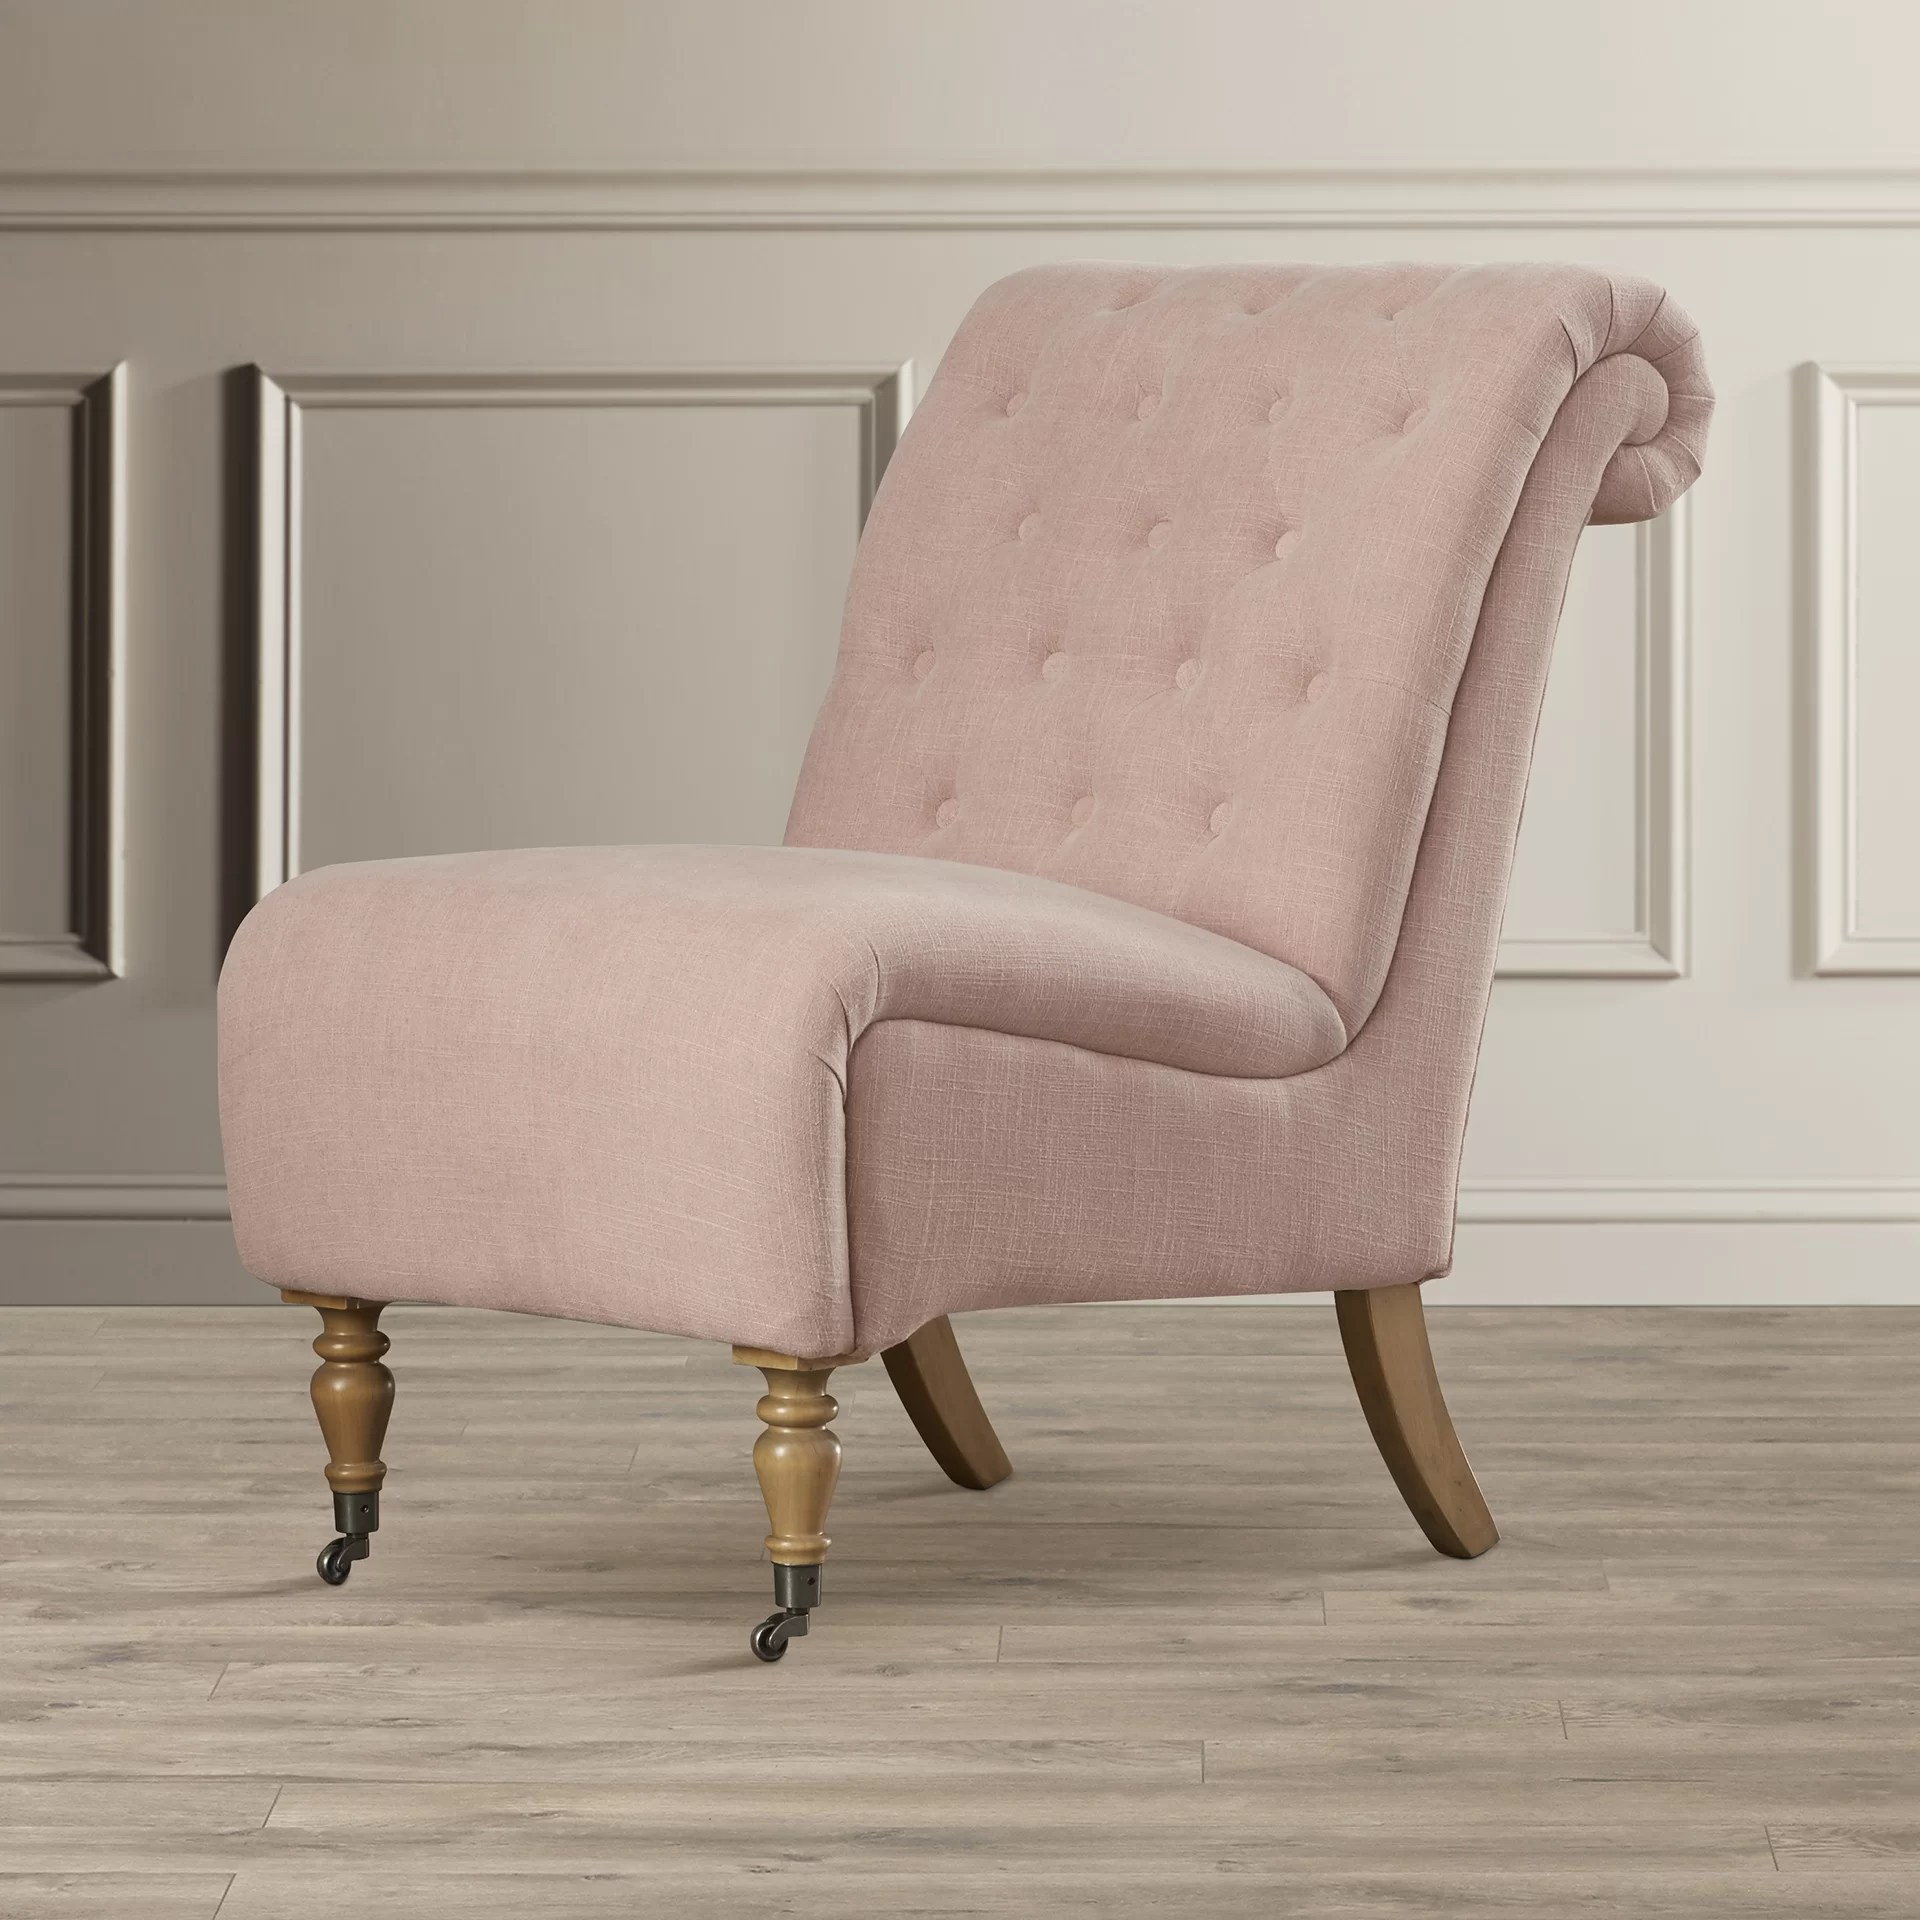 Tufted Slipper Chair House Of Hampton Cyclamen Roll Back Tufted Slipper Chair